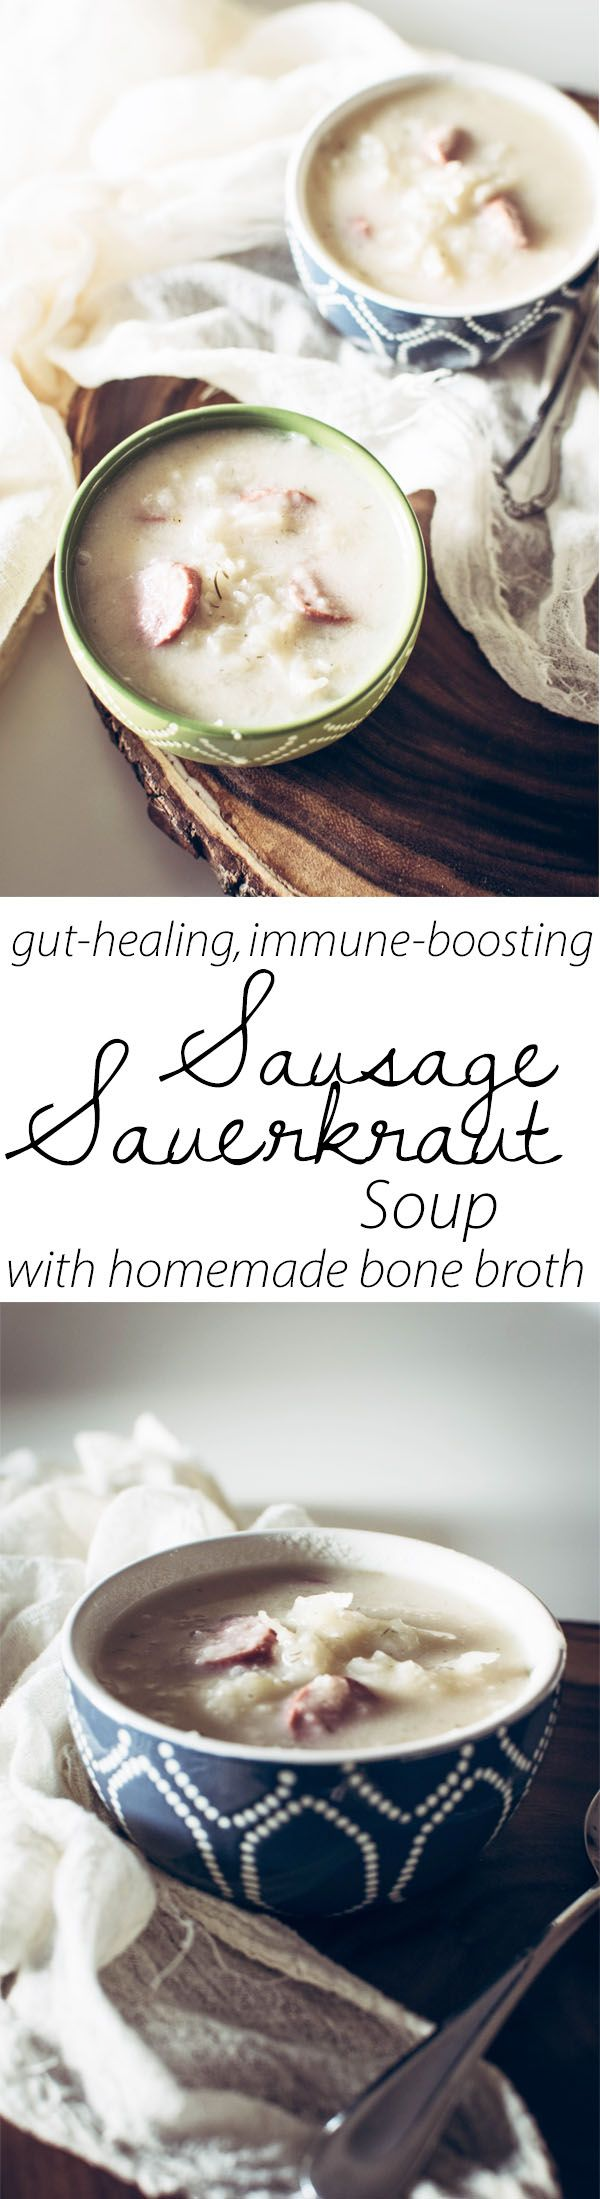 Gut healing Homemade bone broth combined with the power of nutrient dense and probiotic sauerkraut!